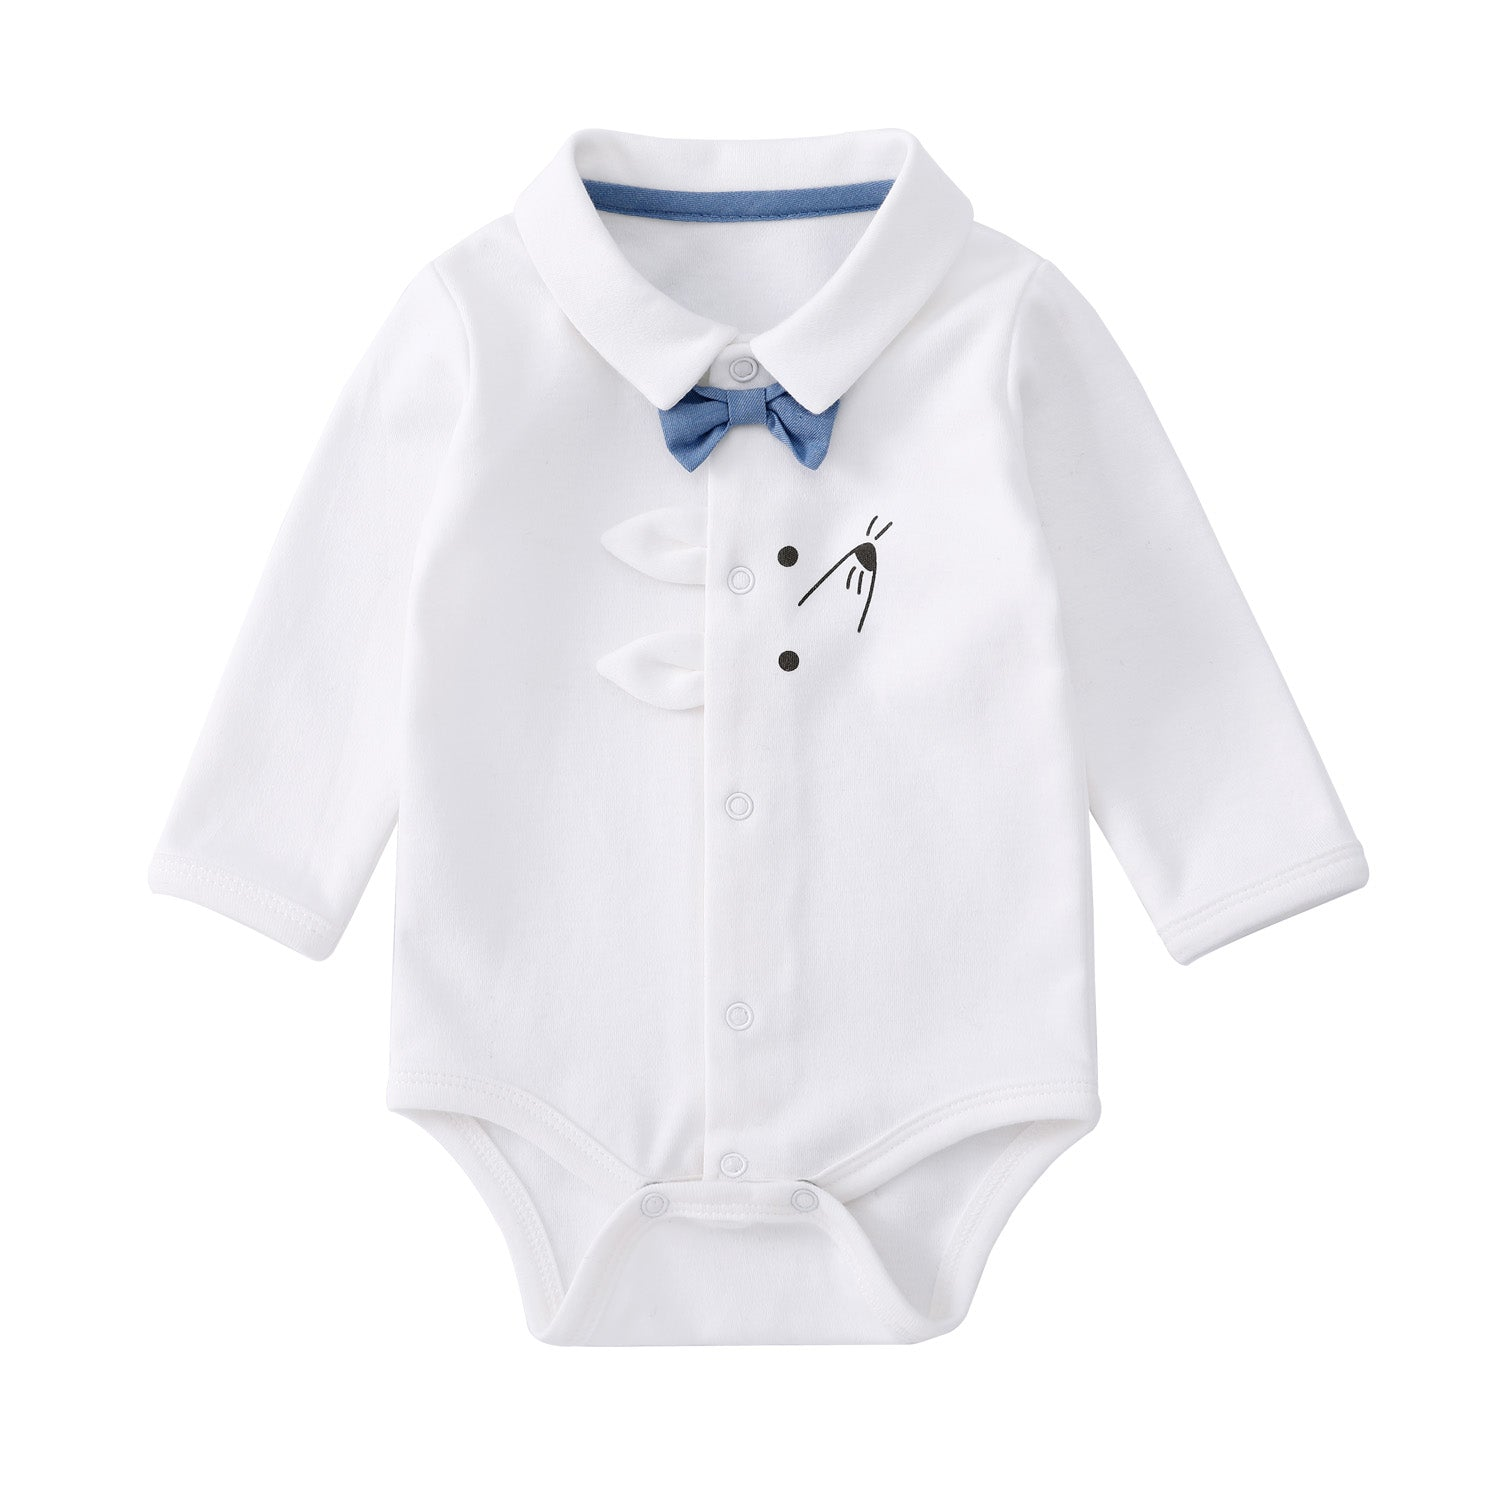 Pureborn Baby Boy Cartoon Bodysuit